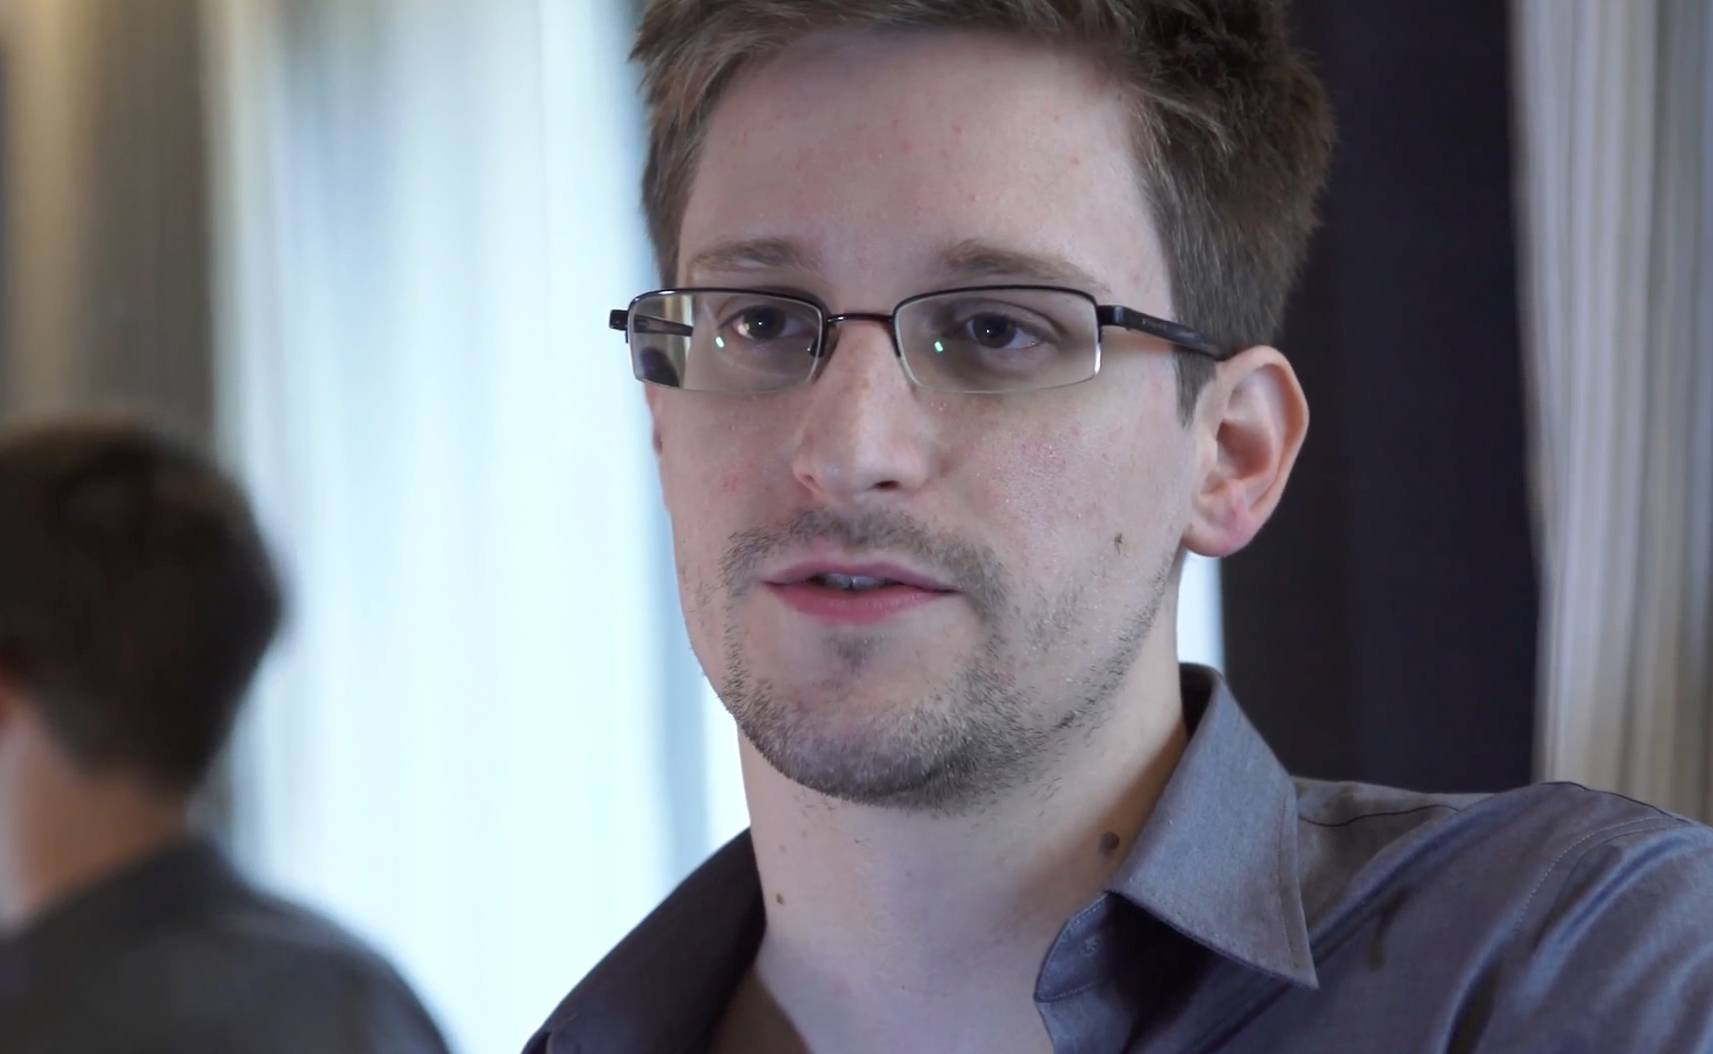 Former NSA systems analyst Edward Snowden, who is wanted by the U.S. for leaking details about once-secret surveillance programs, has been granted permission to stay in Russia for three more years, his lawyer said Thursday, Aug. 7, 2014. Snowden last year was granted temporary asylum of one year in Russia, but that ran out on Aug. 1.